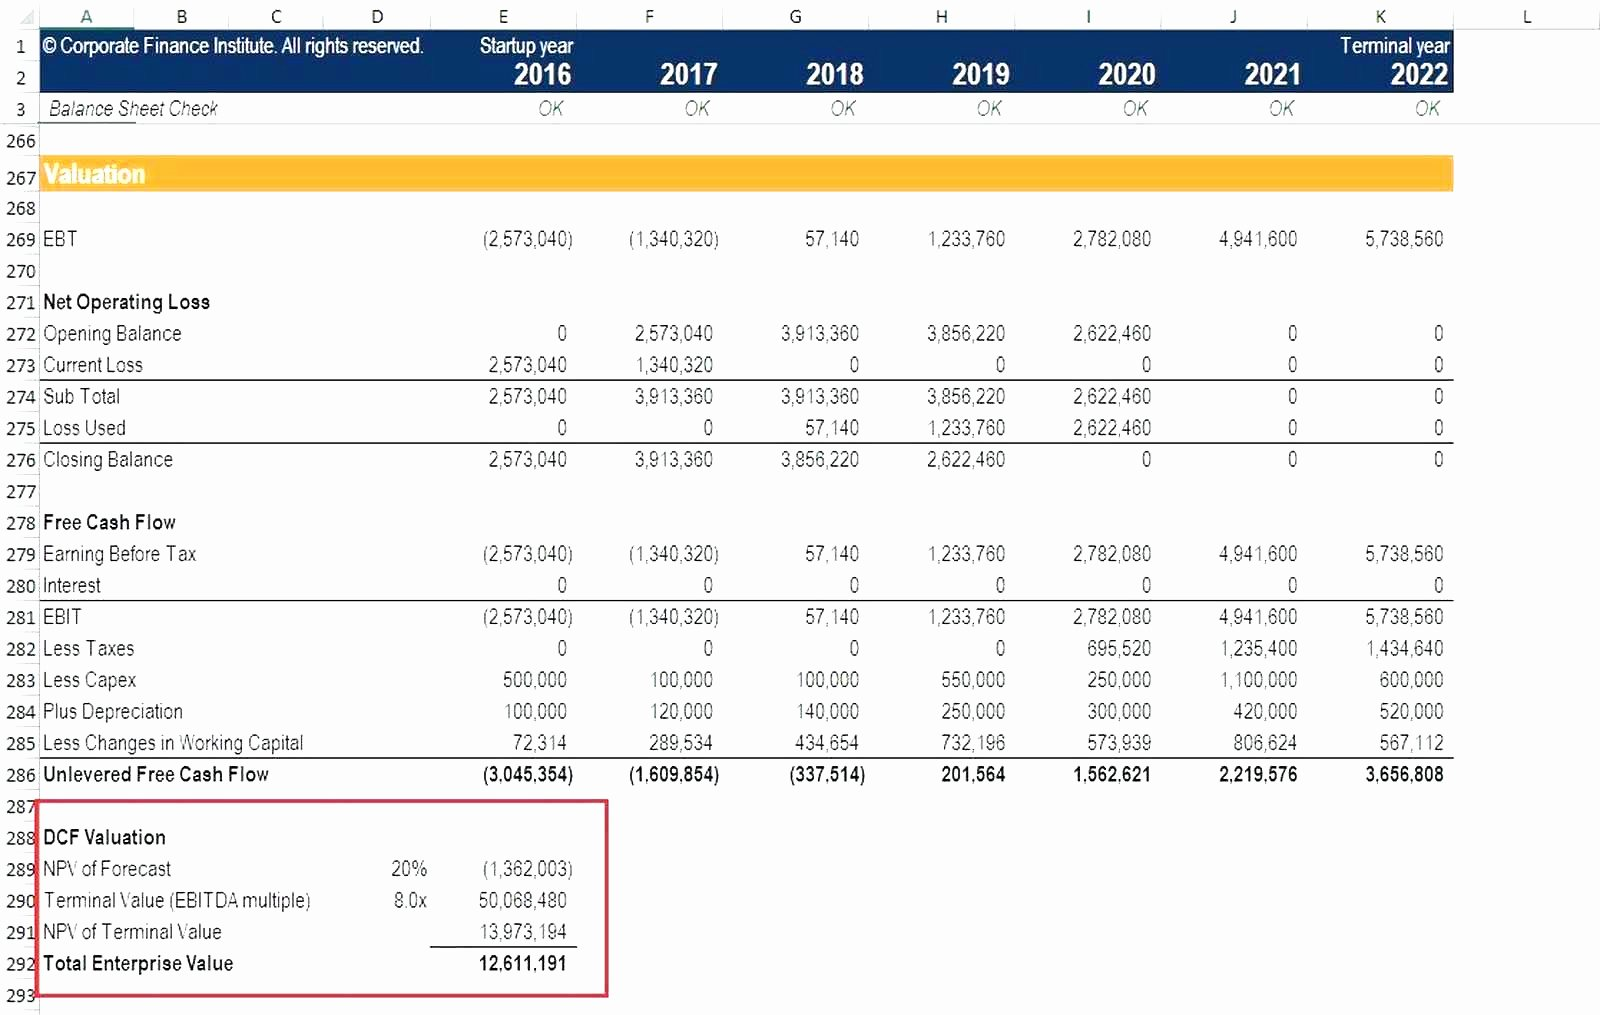 Financial Statements Excel Template New Financial Statement Effects Template Excel Filename